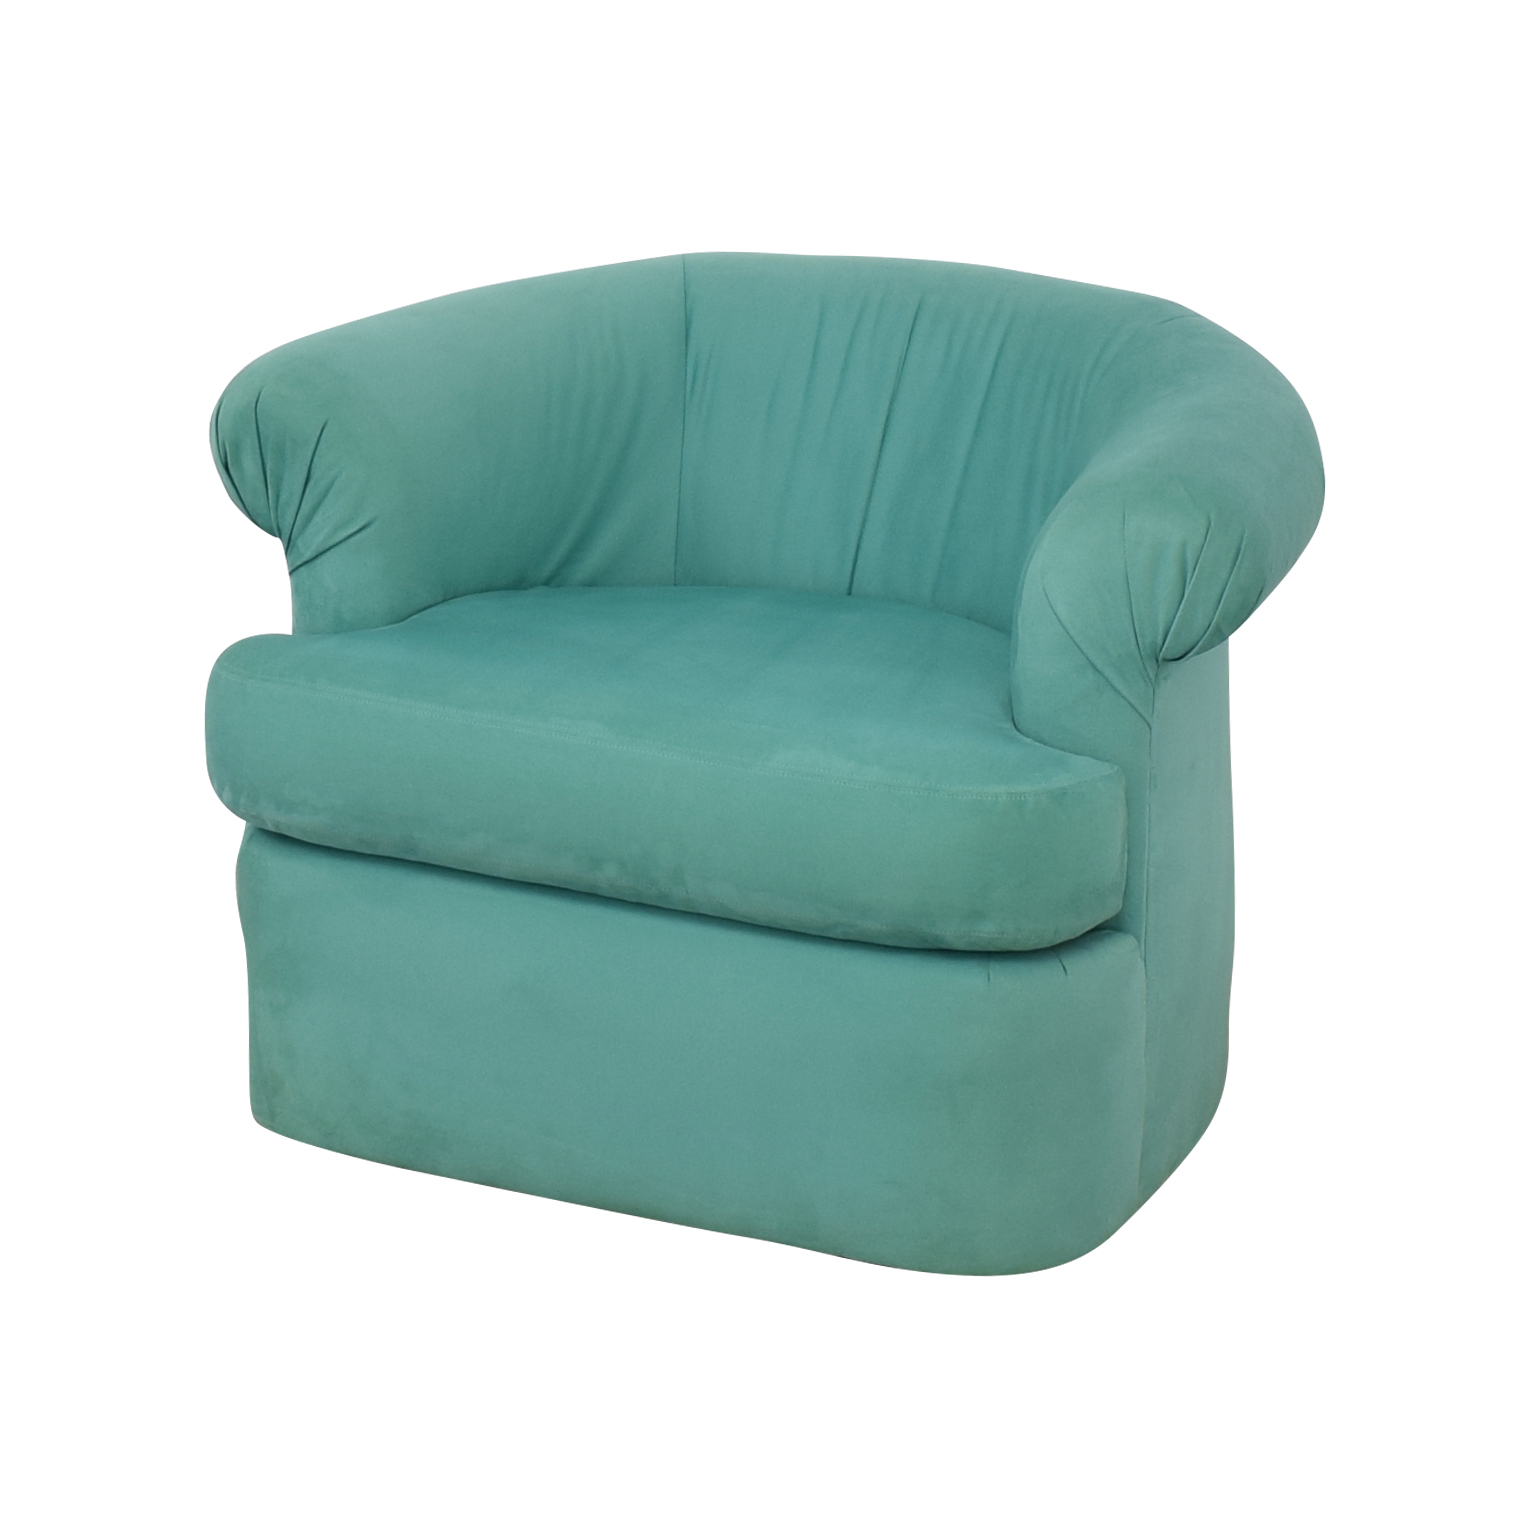 Directional Furniture Directional Furniture Suede Chair used